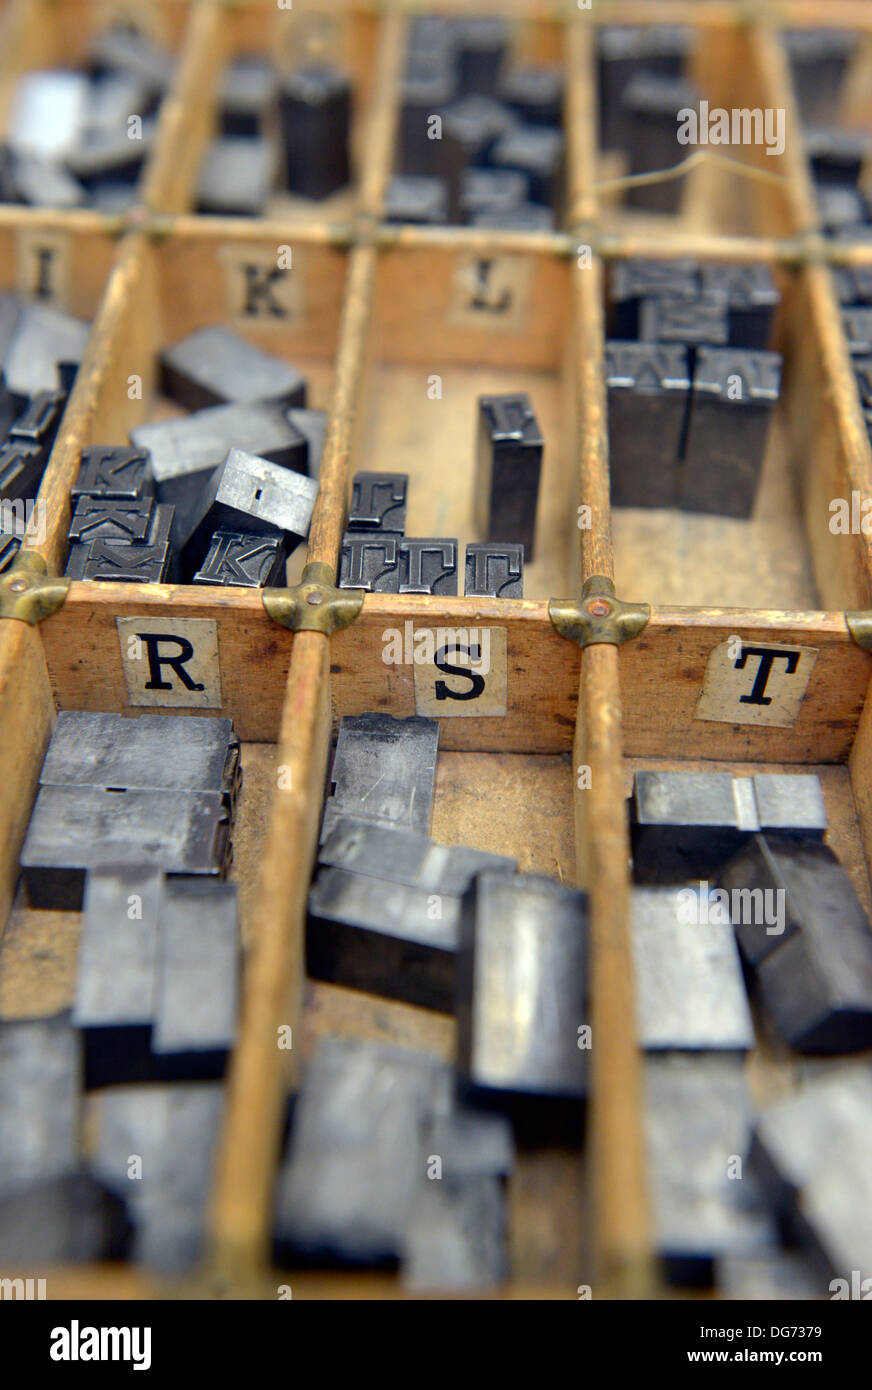 Old fashioned typesetting printing. - Stock Image